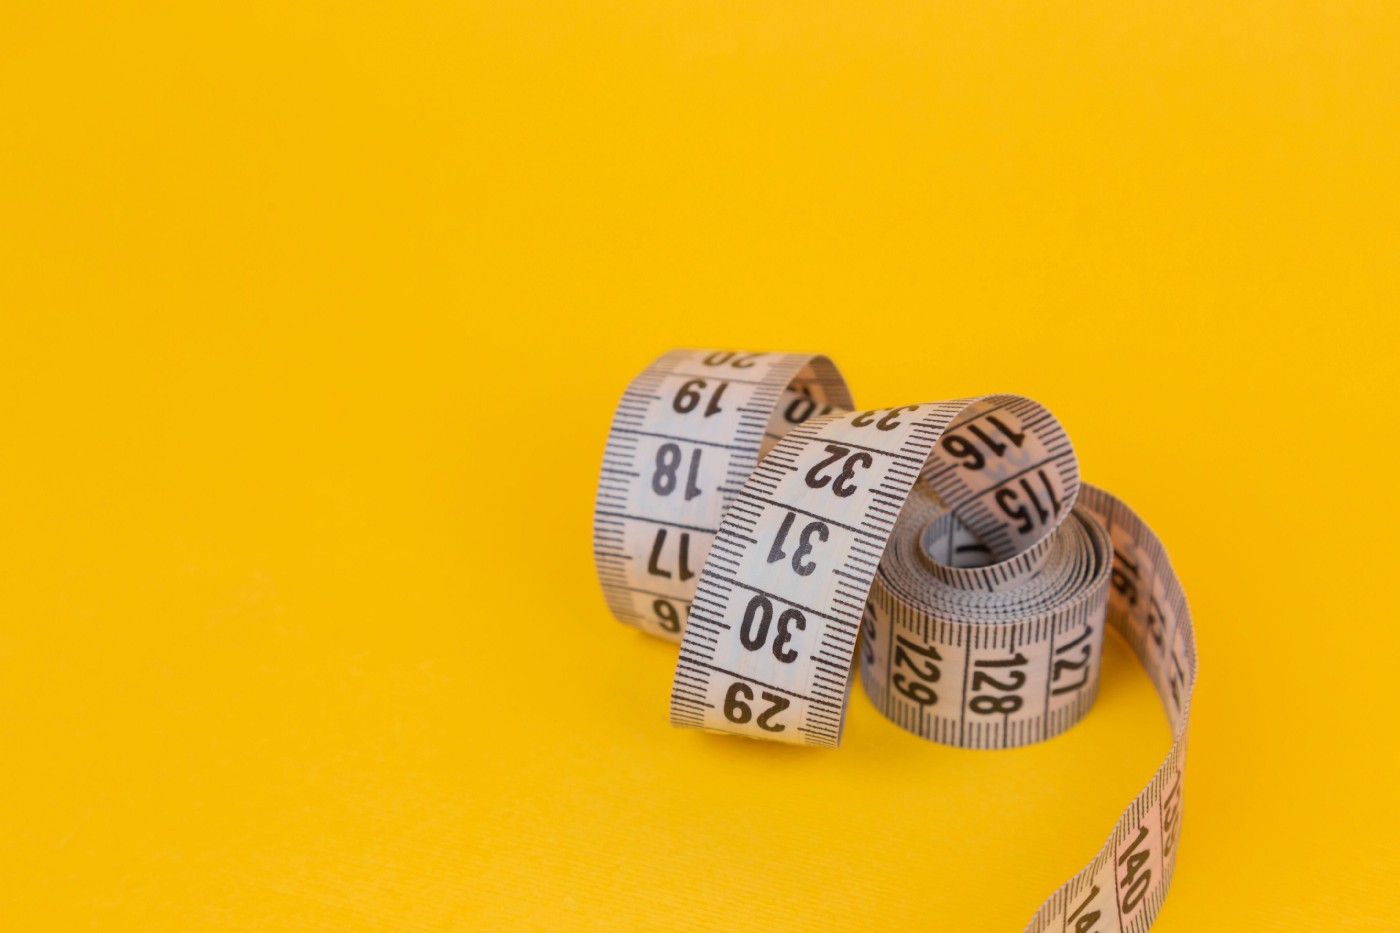 A coiled measuring tape rests against a solid yellow background